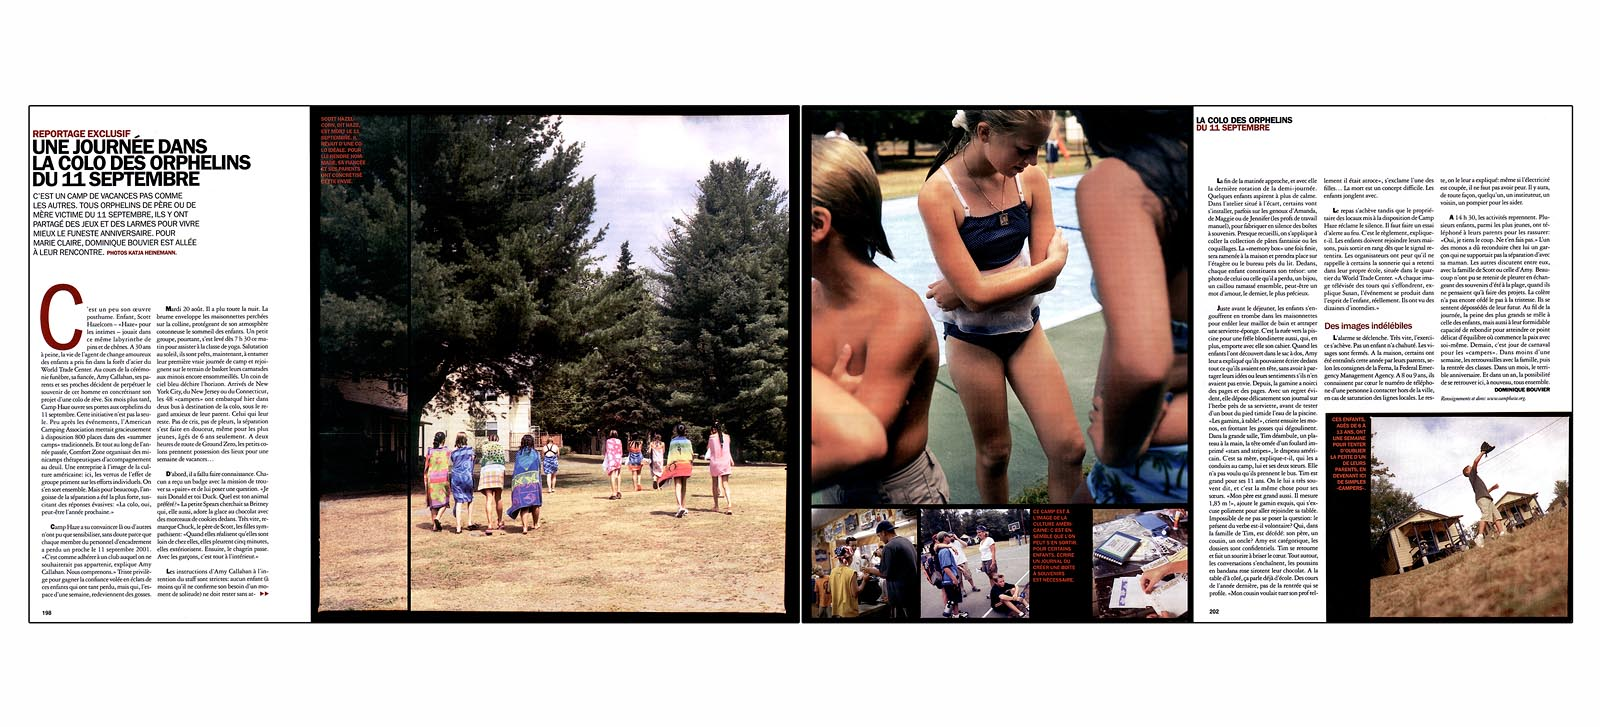 Summer camp for 9/11 orphans and impacted families, 2002.